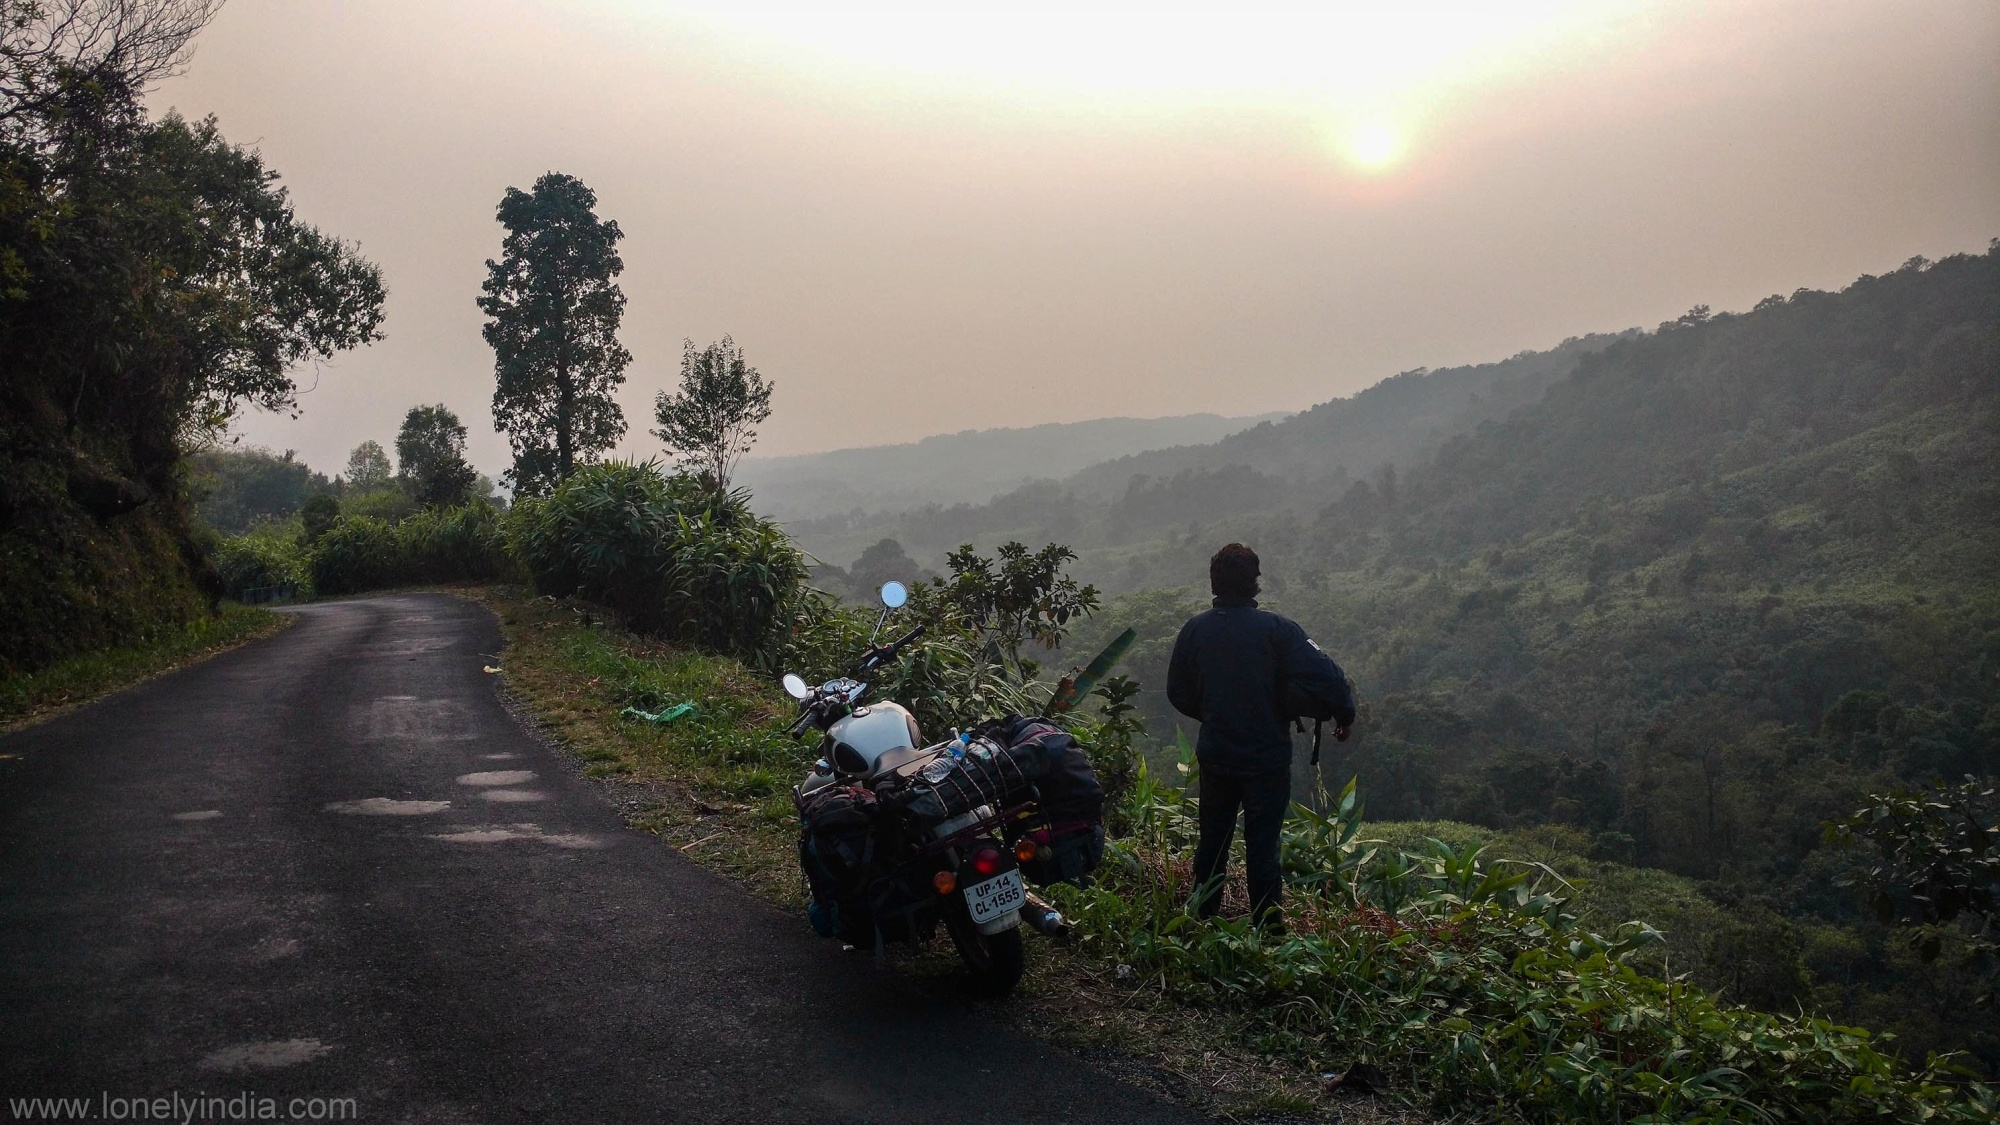 Roadtrip to cleanest village of asia in Meghalaya